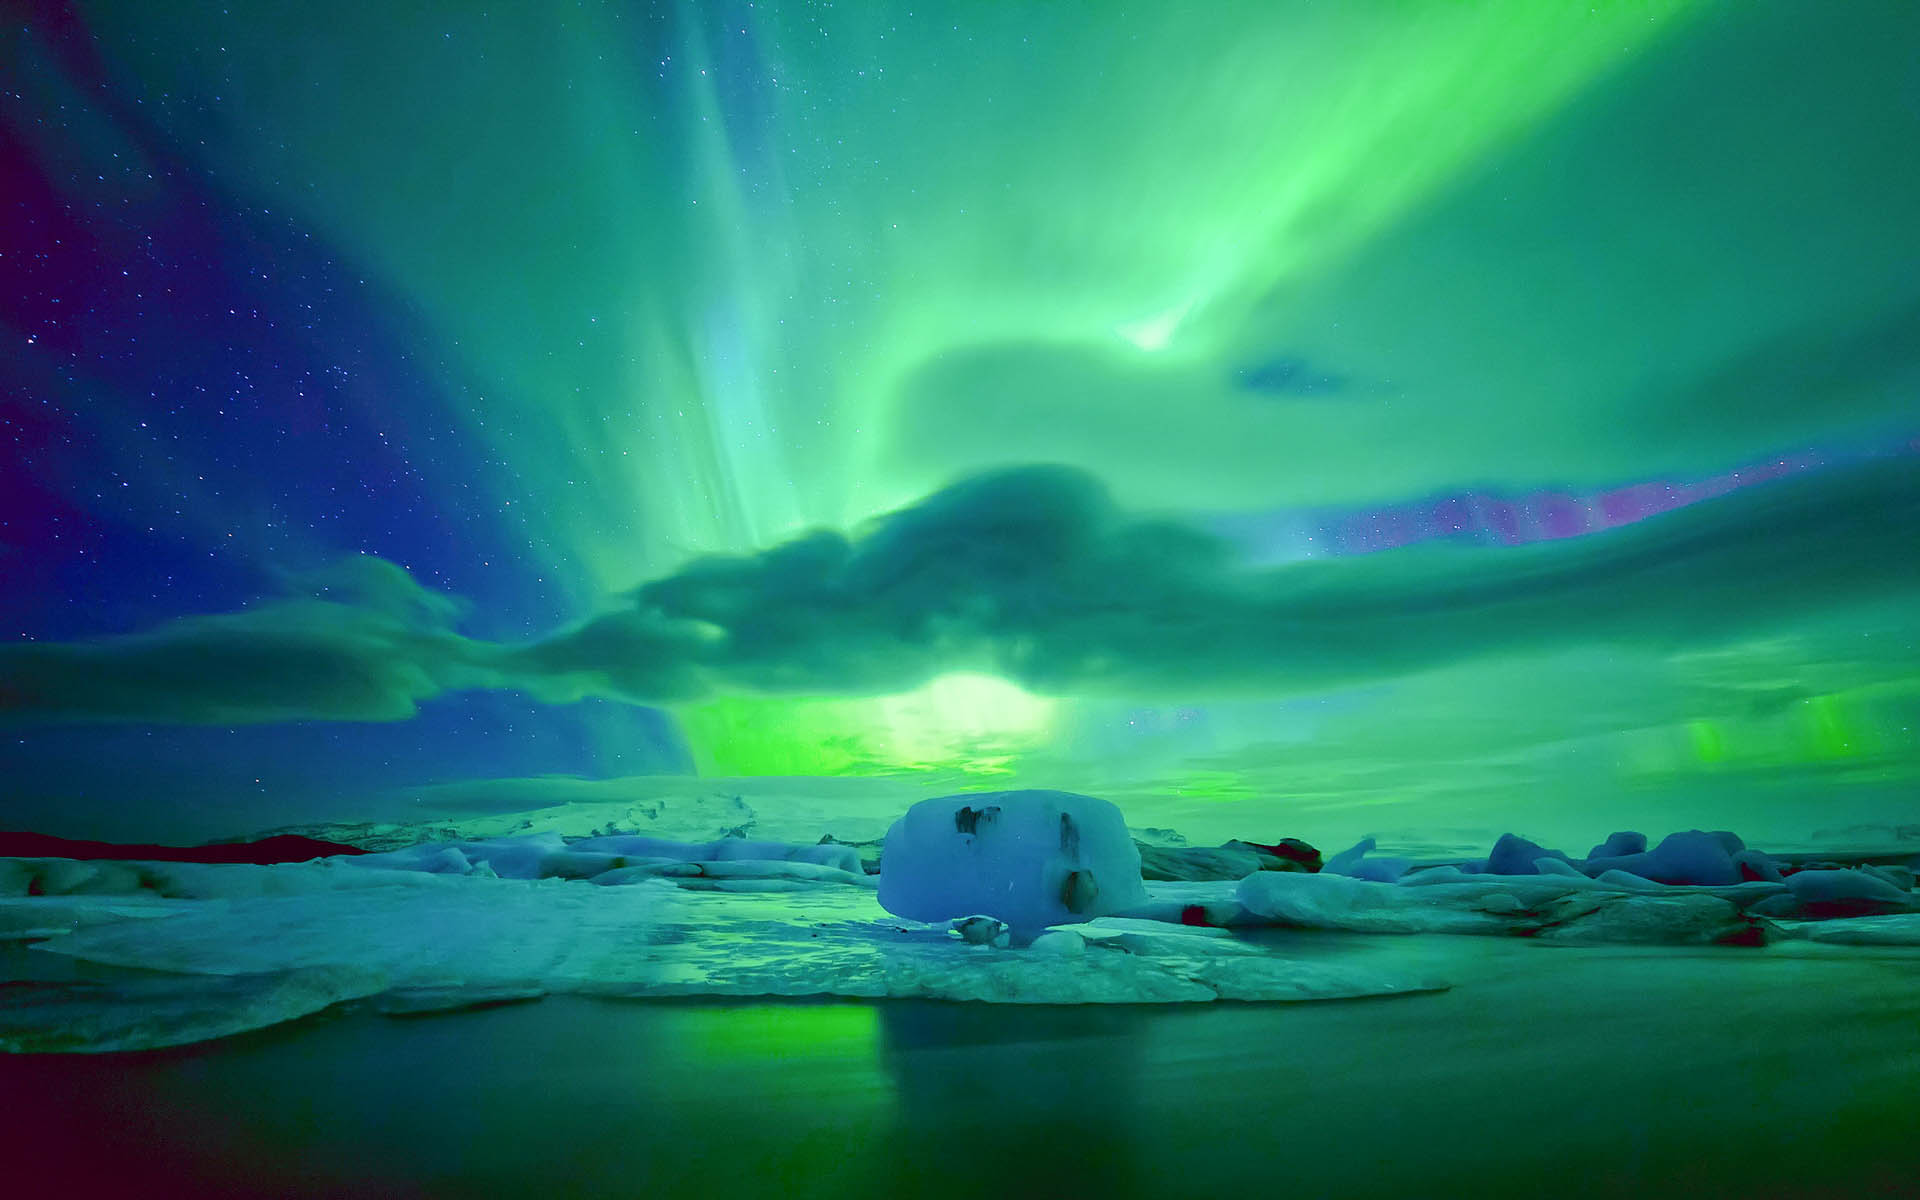 Aurora Borealis Wallpapers and Background Images